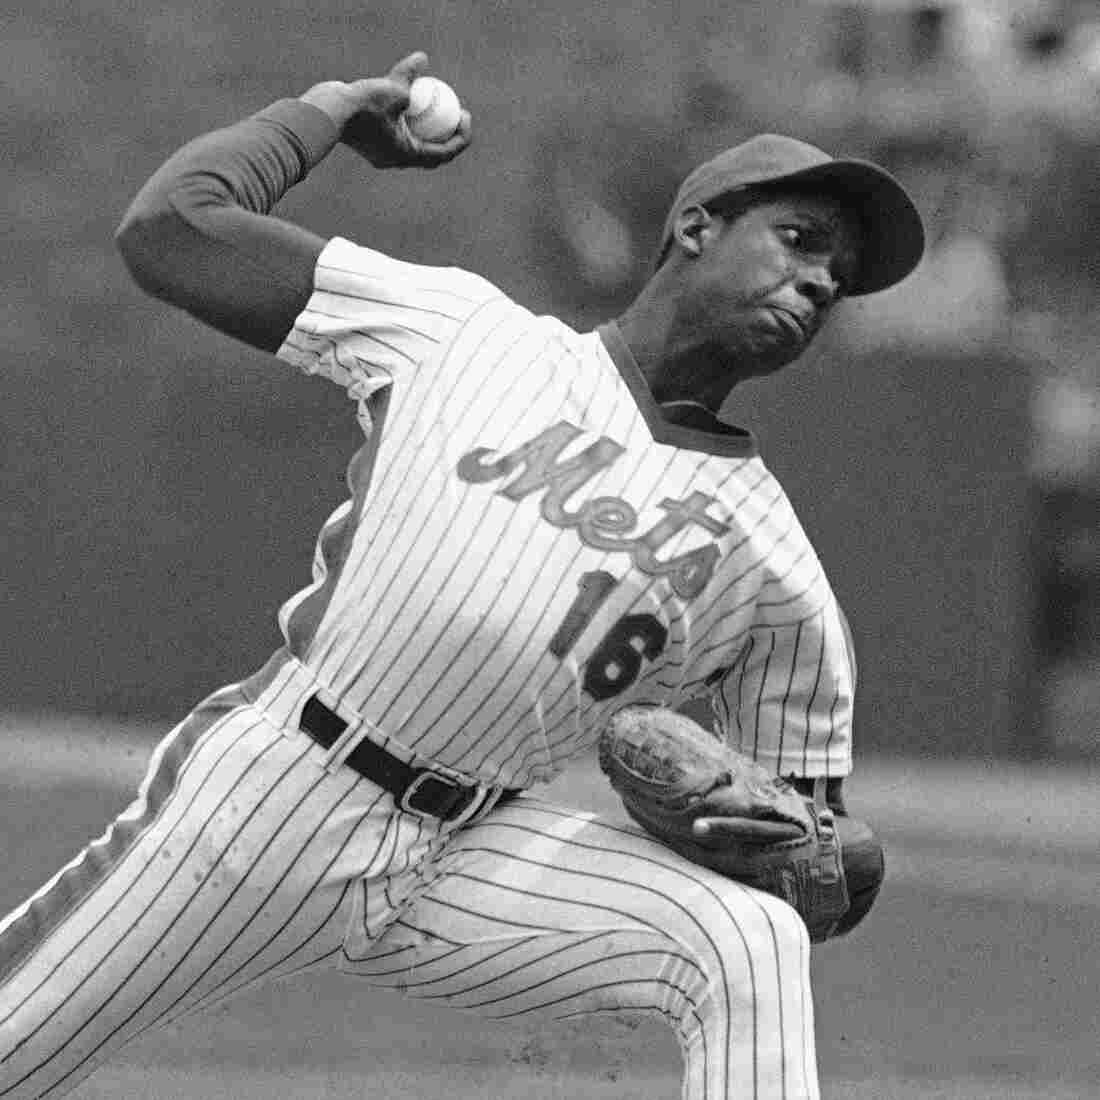 Baseball's 'Doc' Gooden Pitches A Cautionary Tale